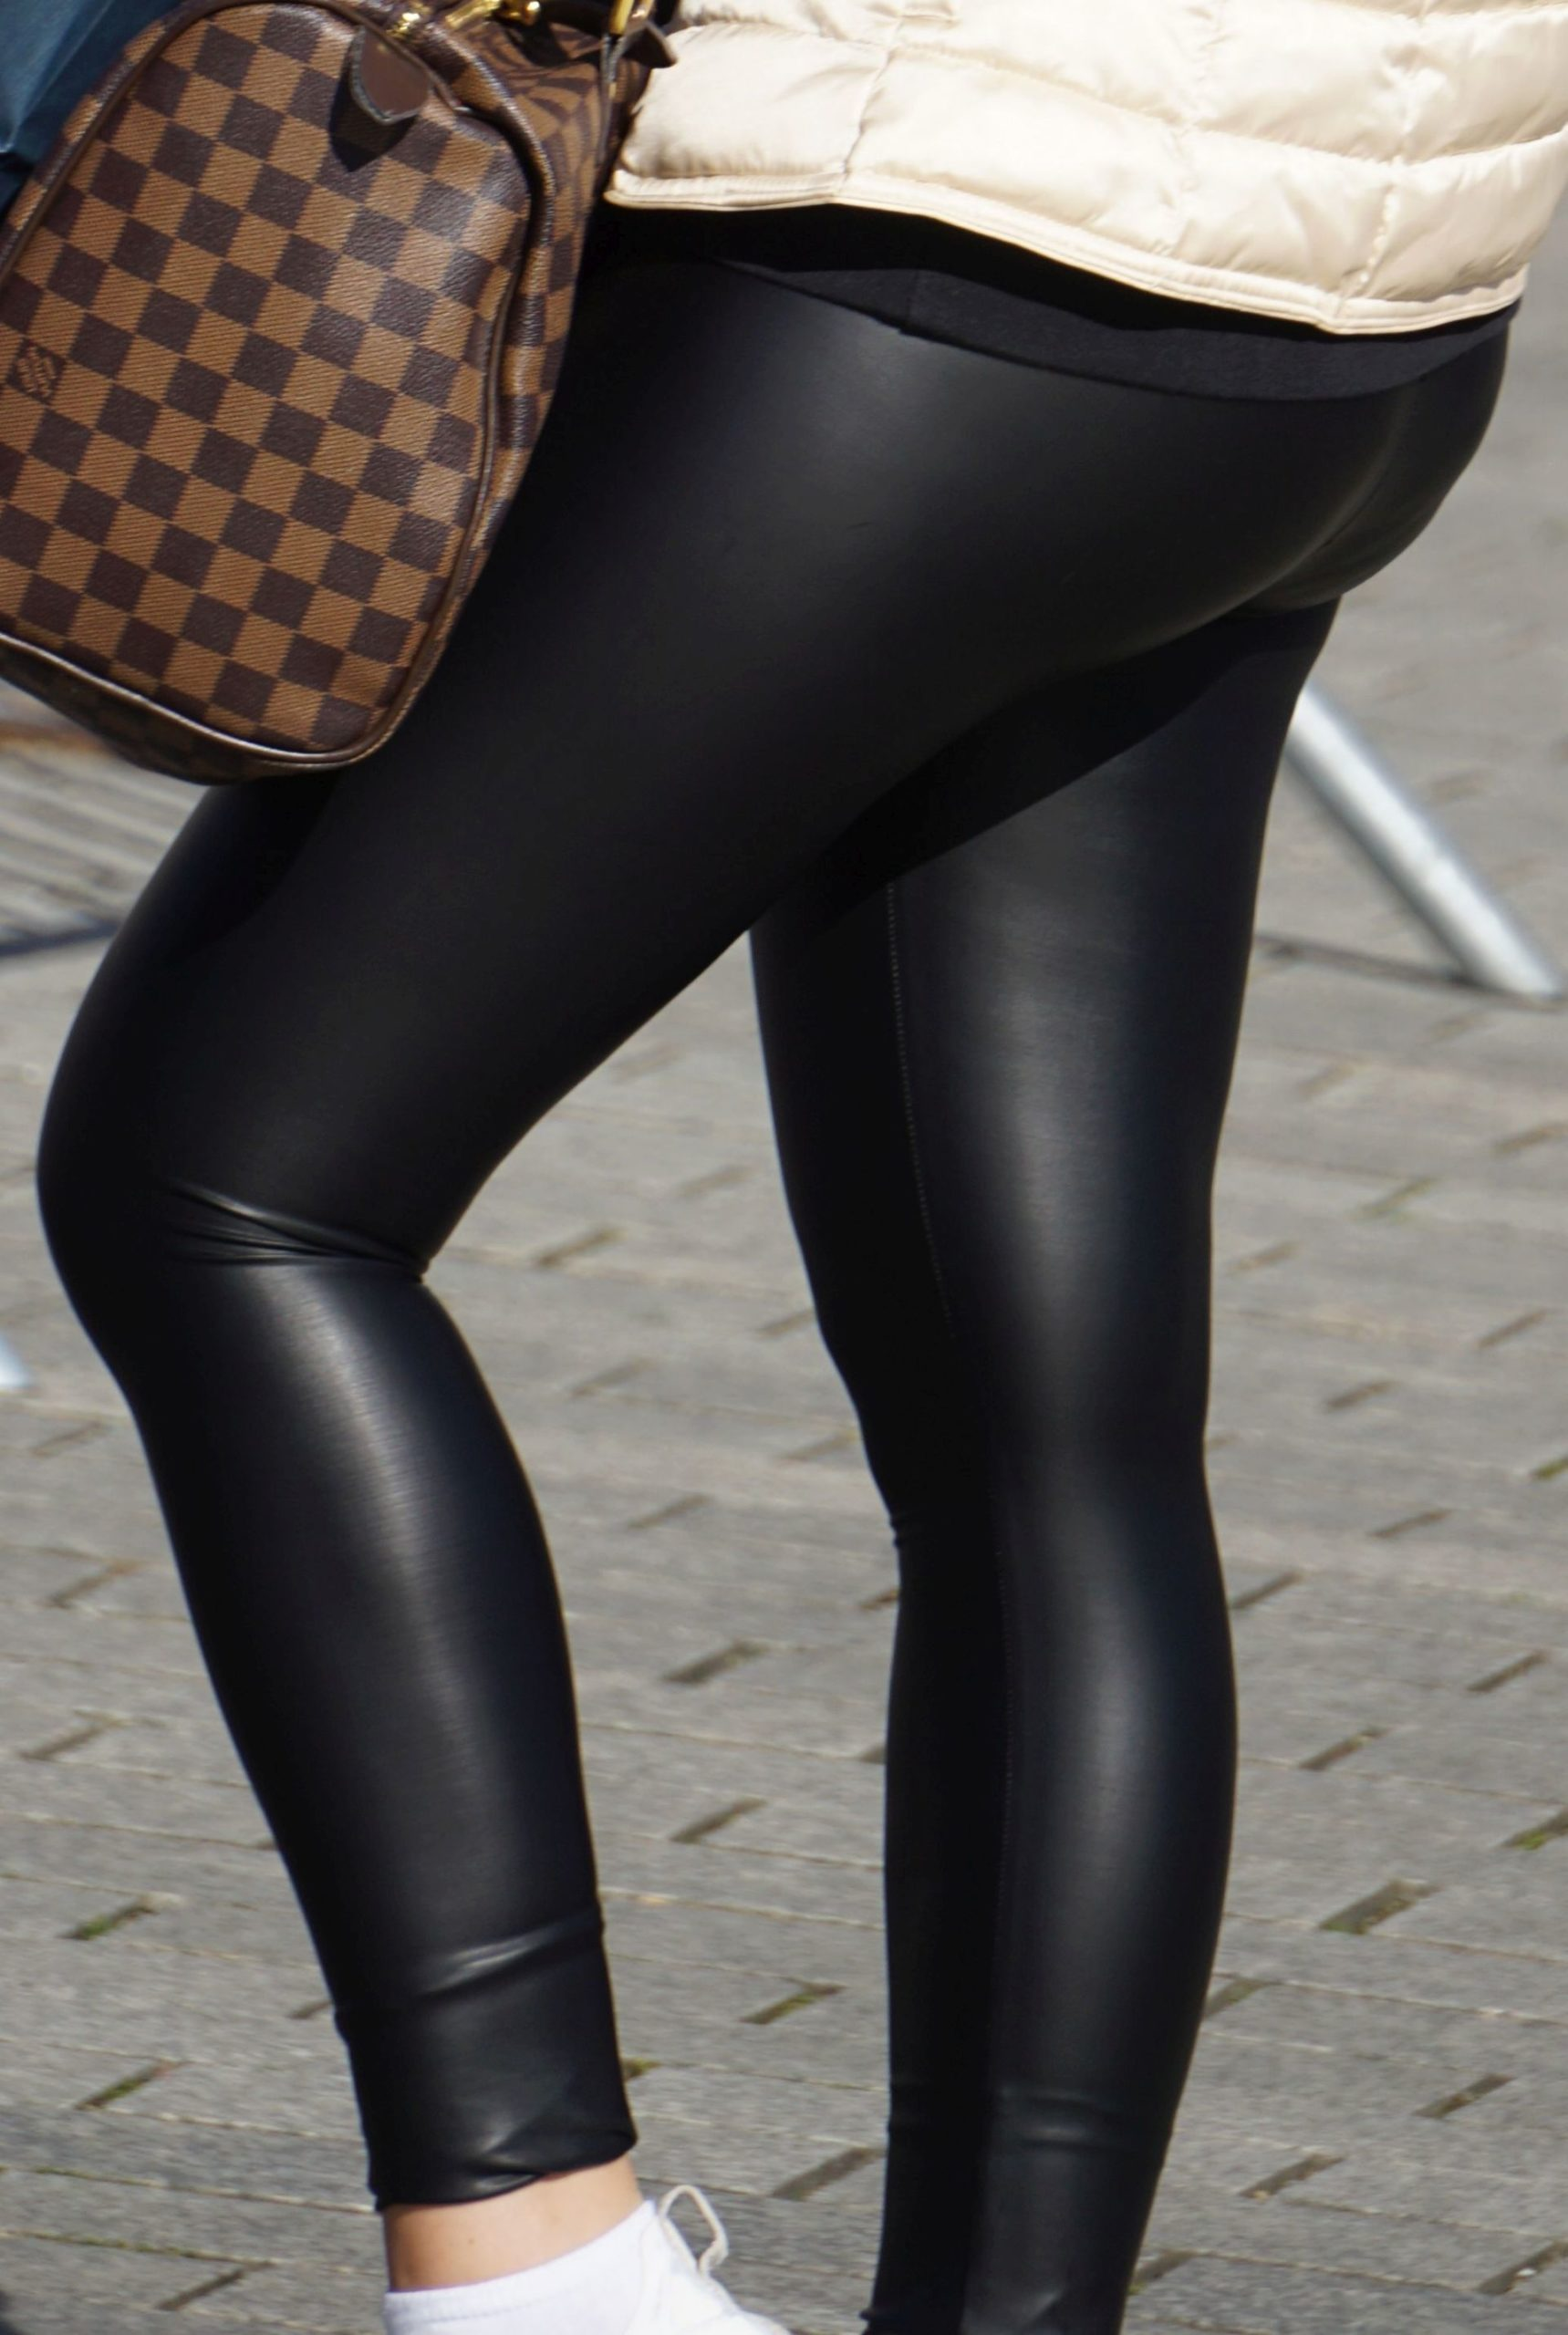 Leather leggings – tight round MEGABUTT – bend over!